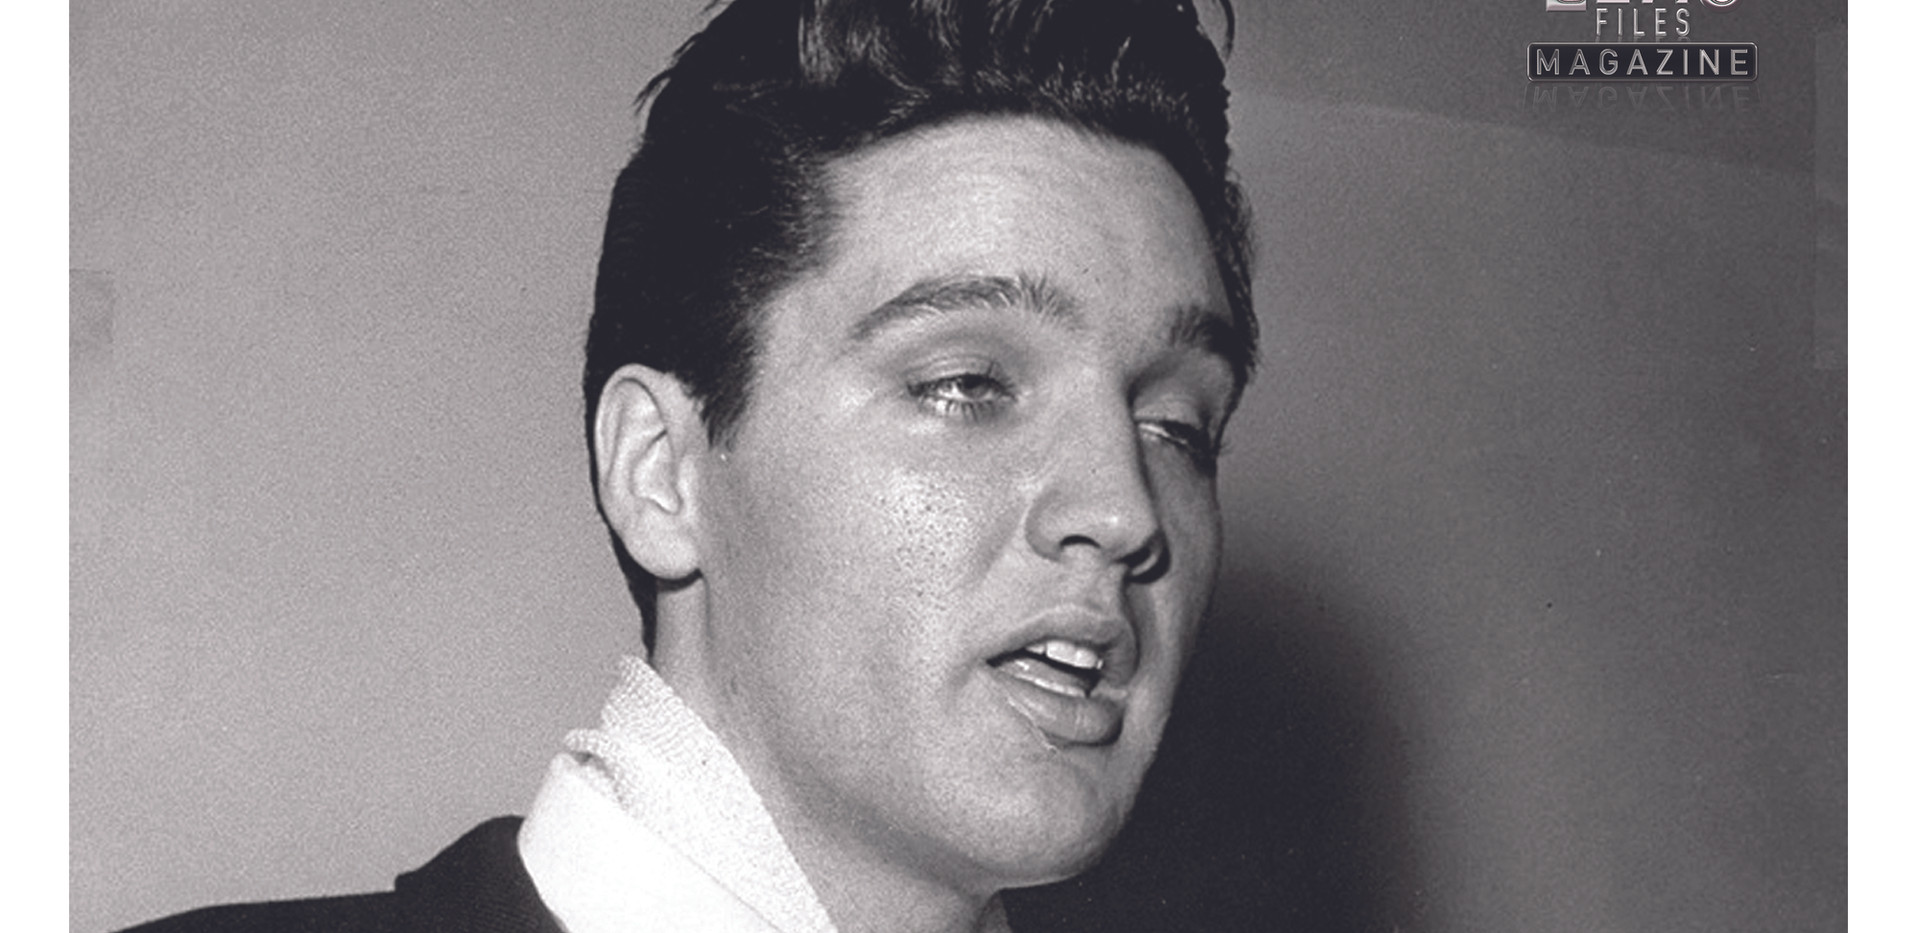 The Elvis Files issue #10 2014 (2)